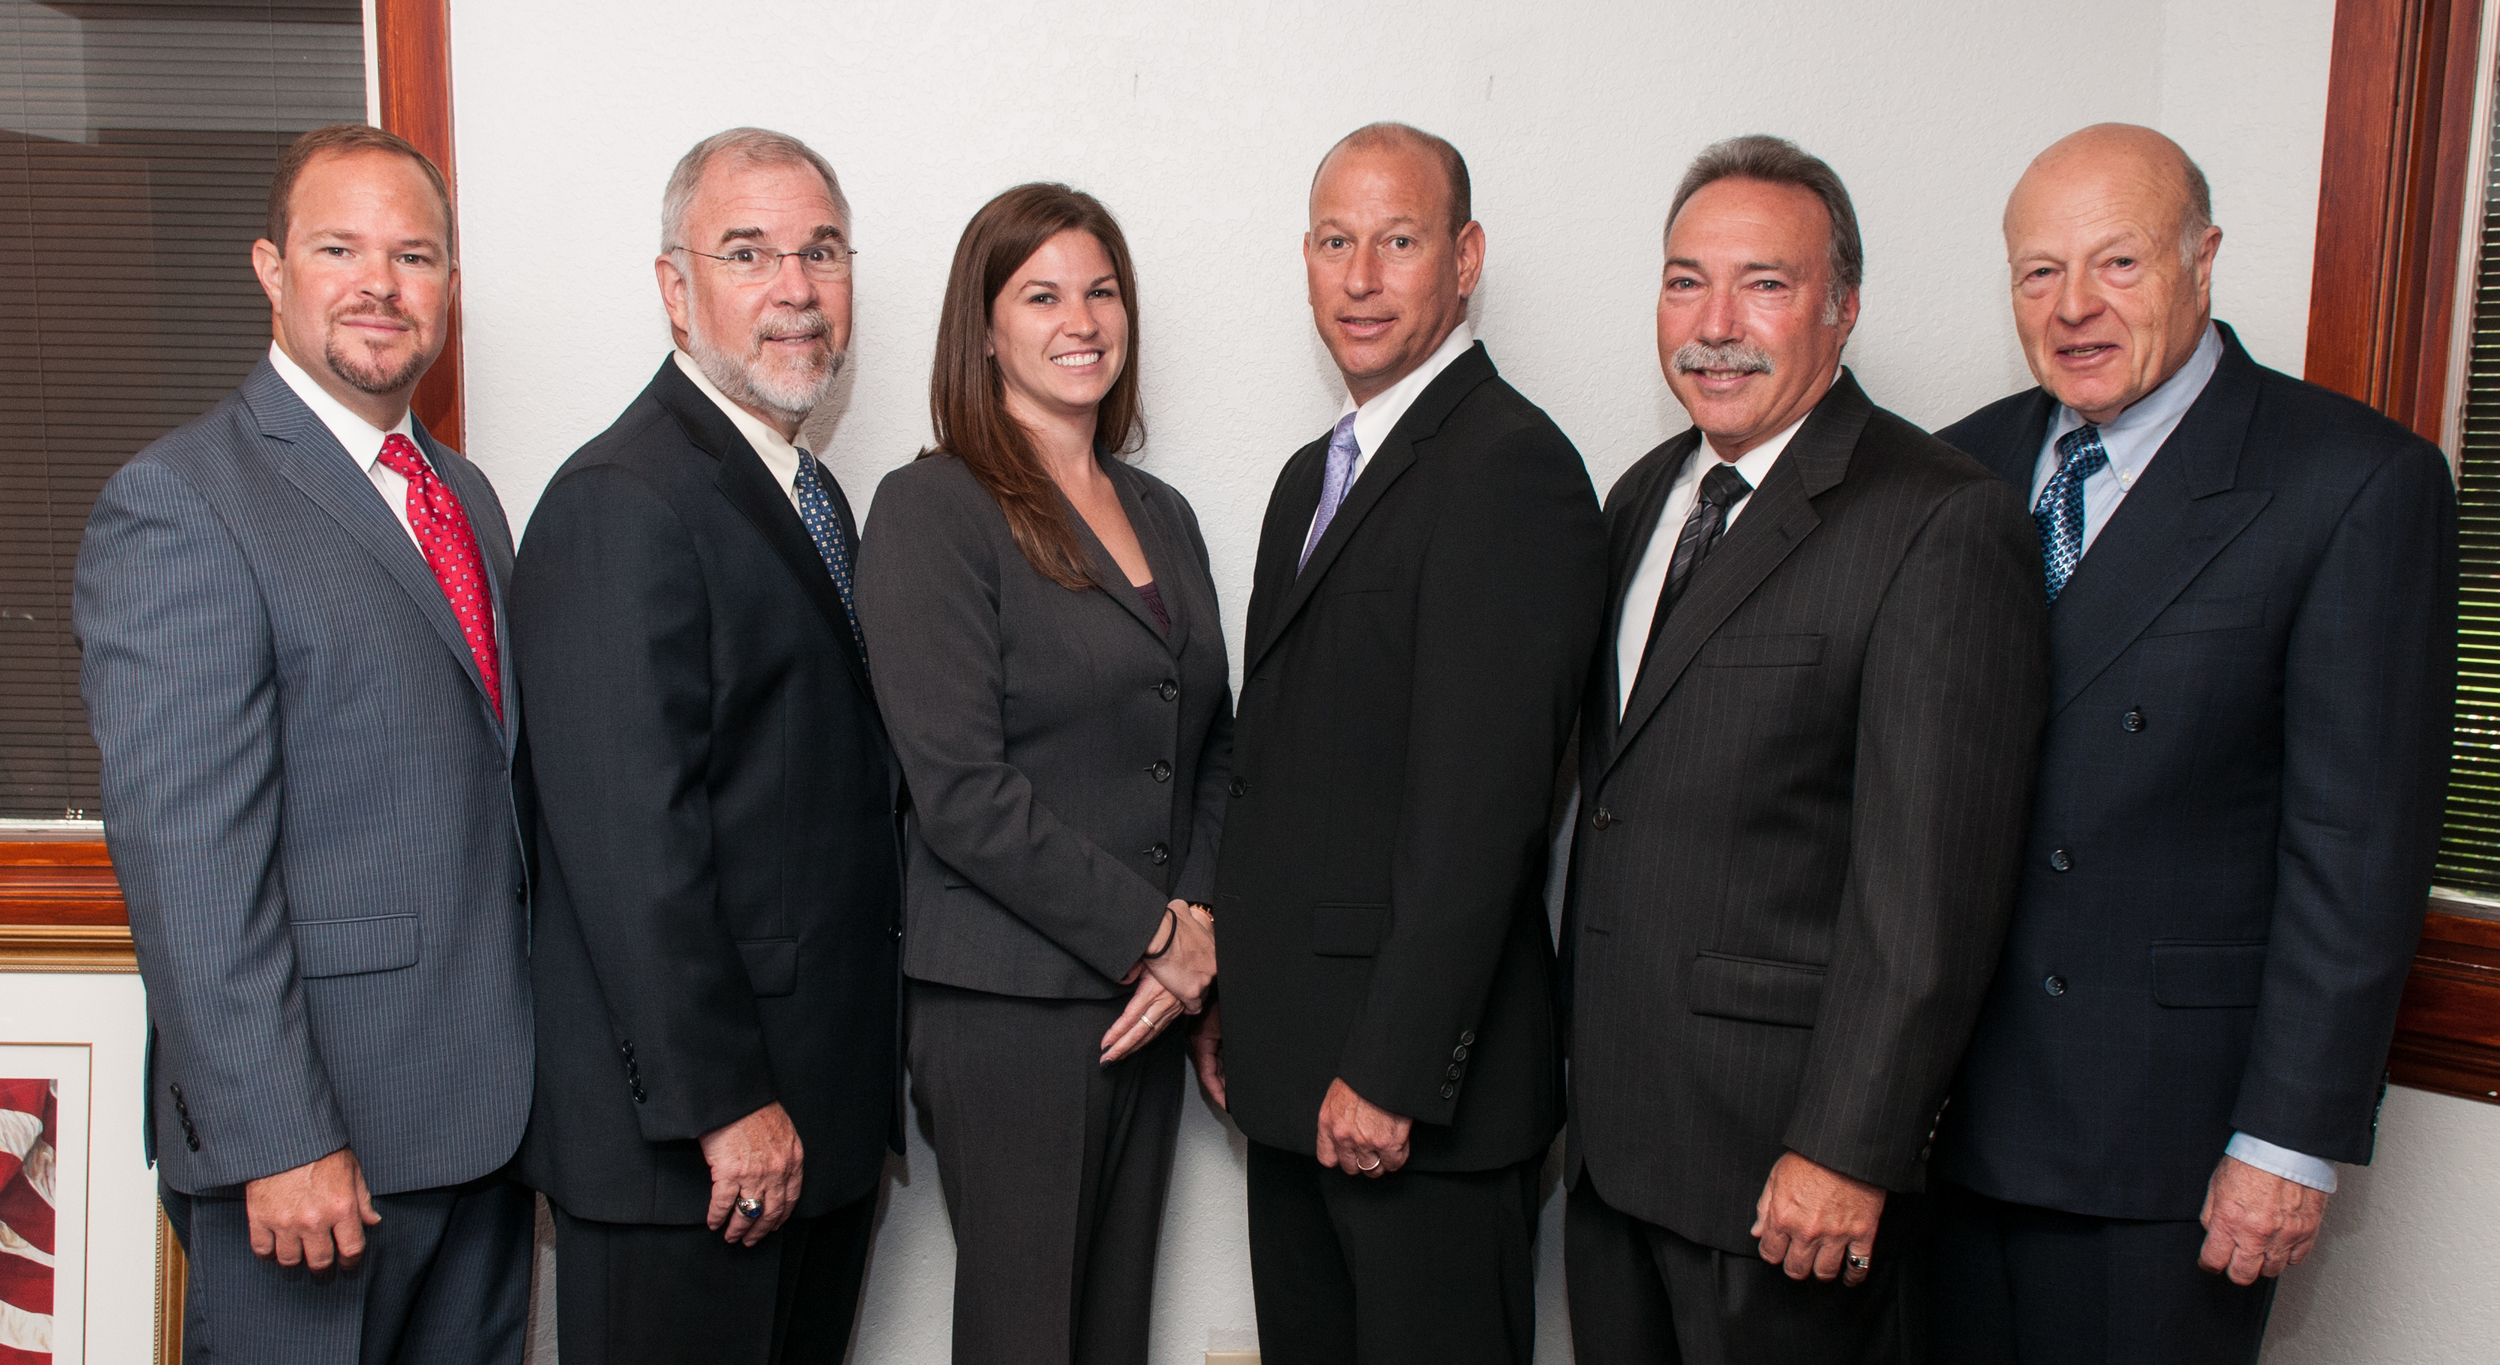 Our team of in-house attorneys brings decades of experience to work for you.